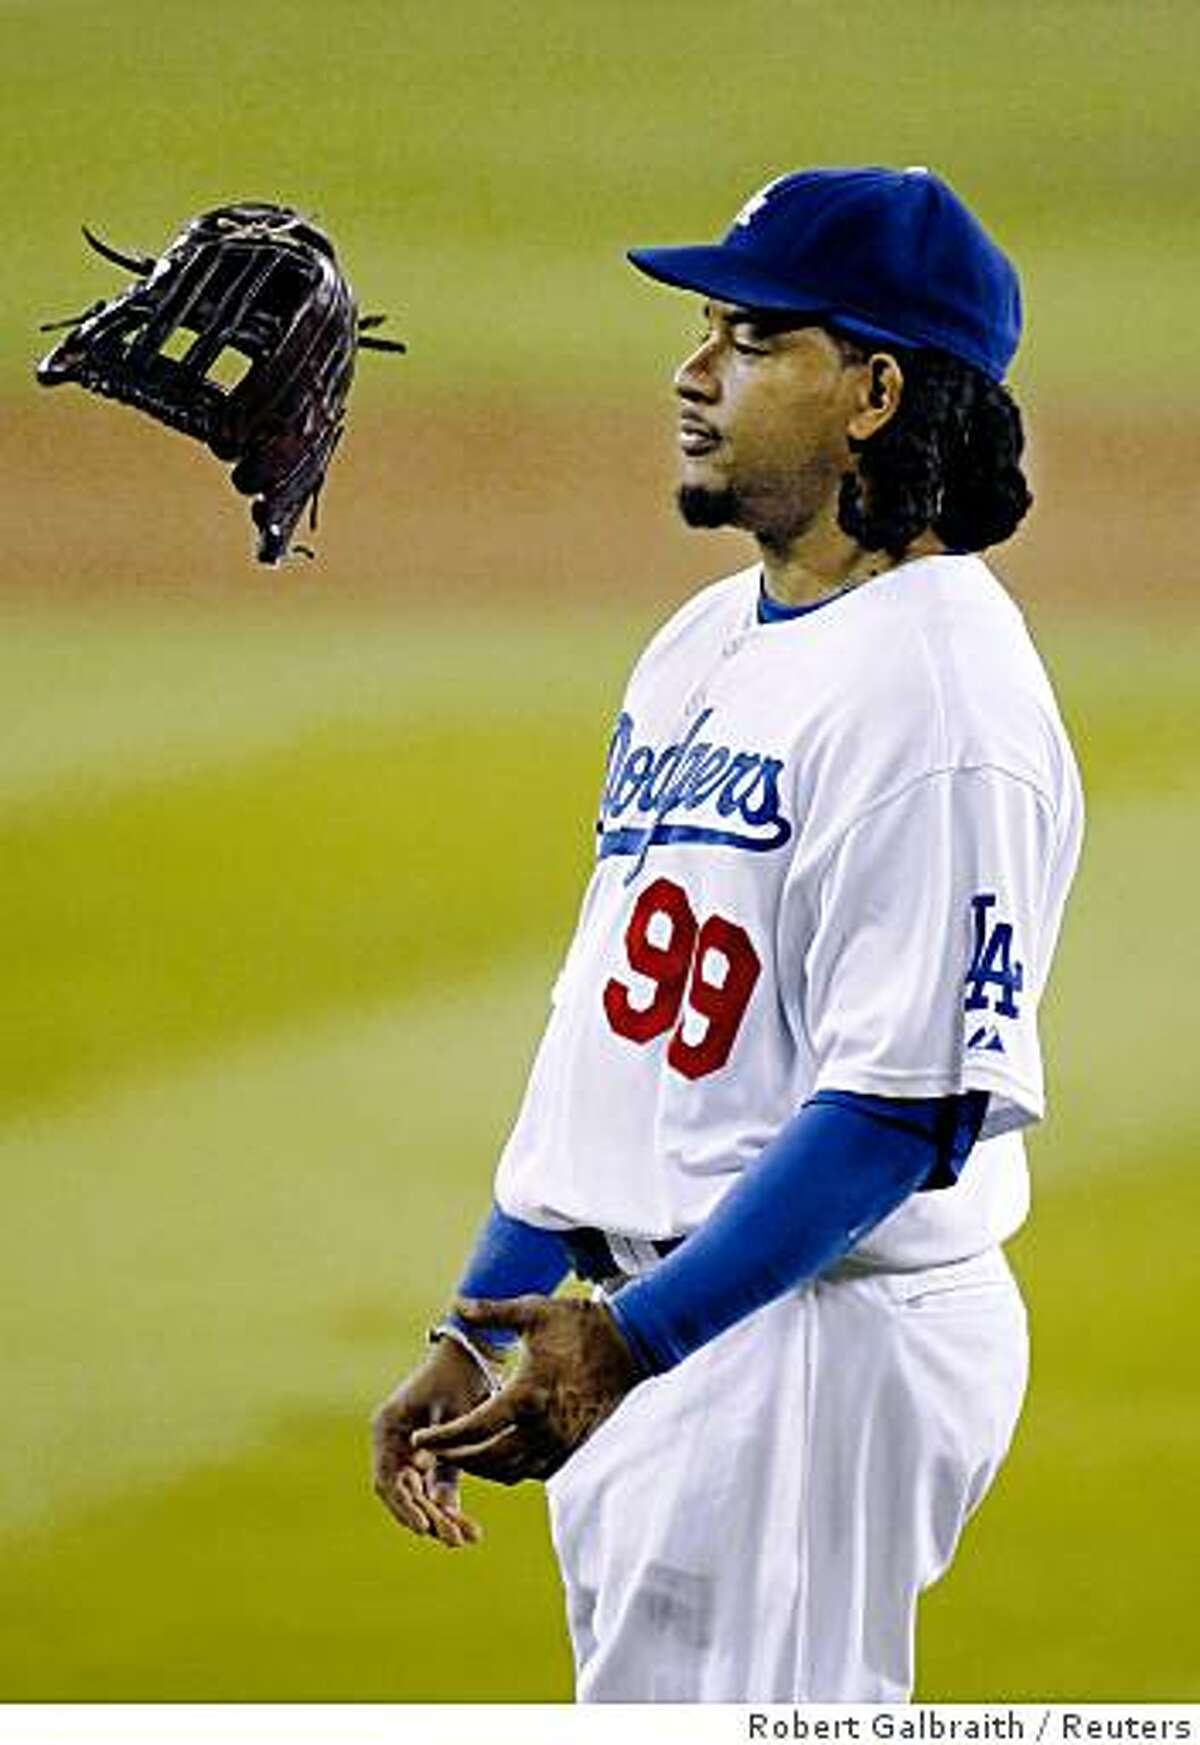 Los Angeles Dodgers left fielder Manny Ramirez flips his glove during a pitching change in the eighth inning against the Philadephia Phillies in Game 5 of Major League Baseball's NLCS playoff series in Los Angeles, October 15, 2008. REUTERS/Robert Galbraith (UNITED STATES)